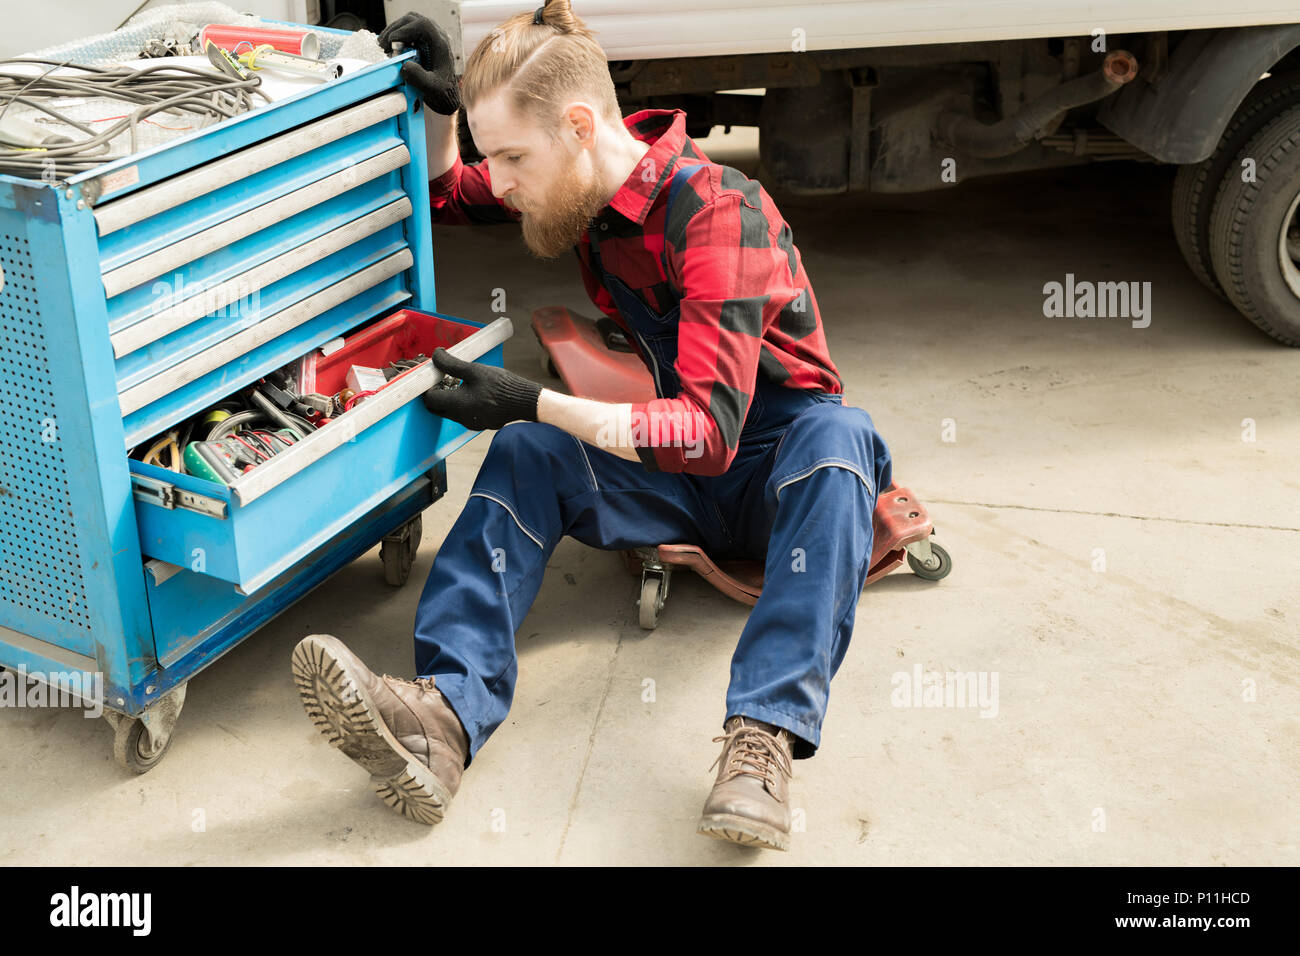 Professional Auto Mechanic At work - Stock Image